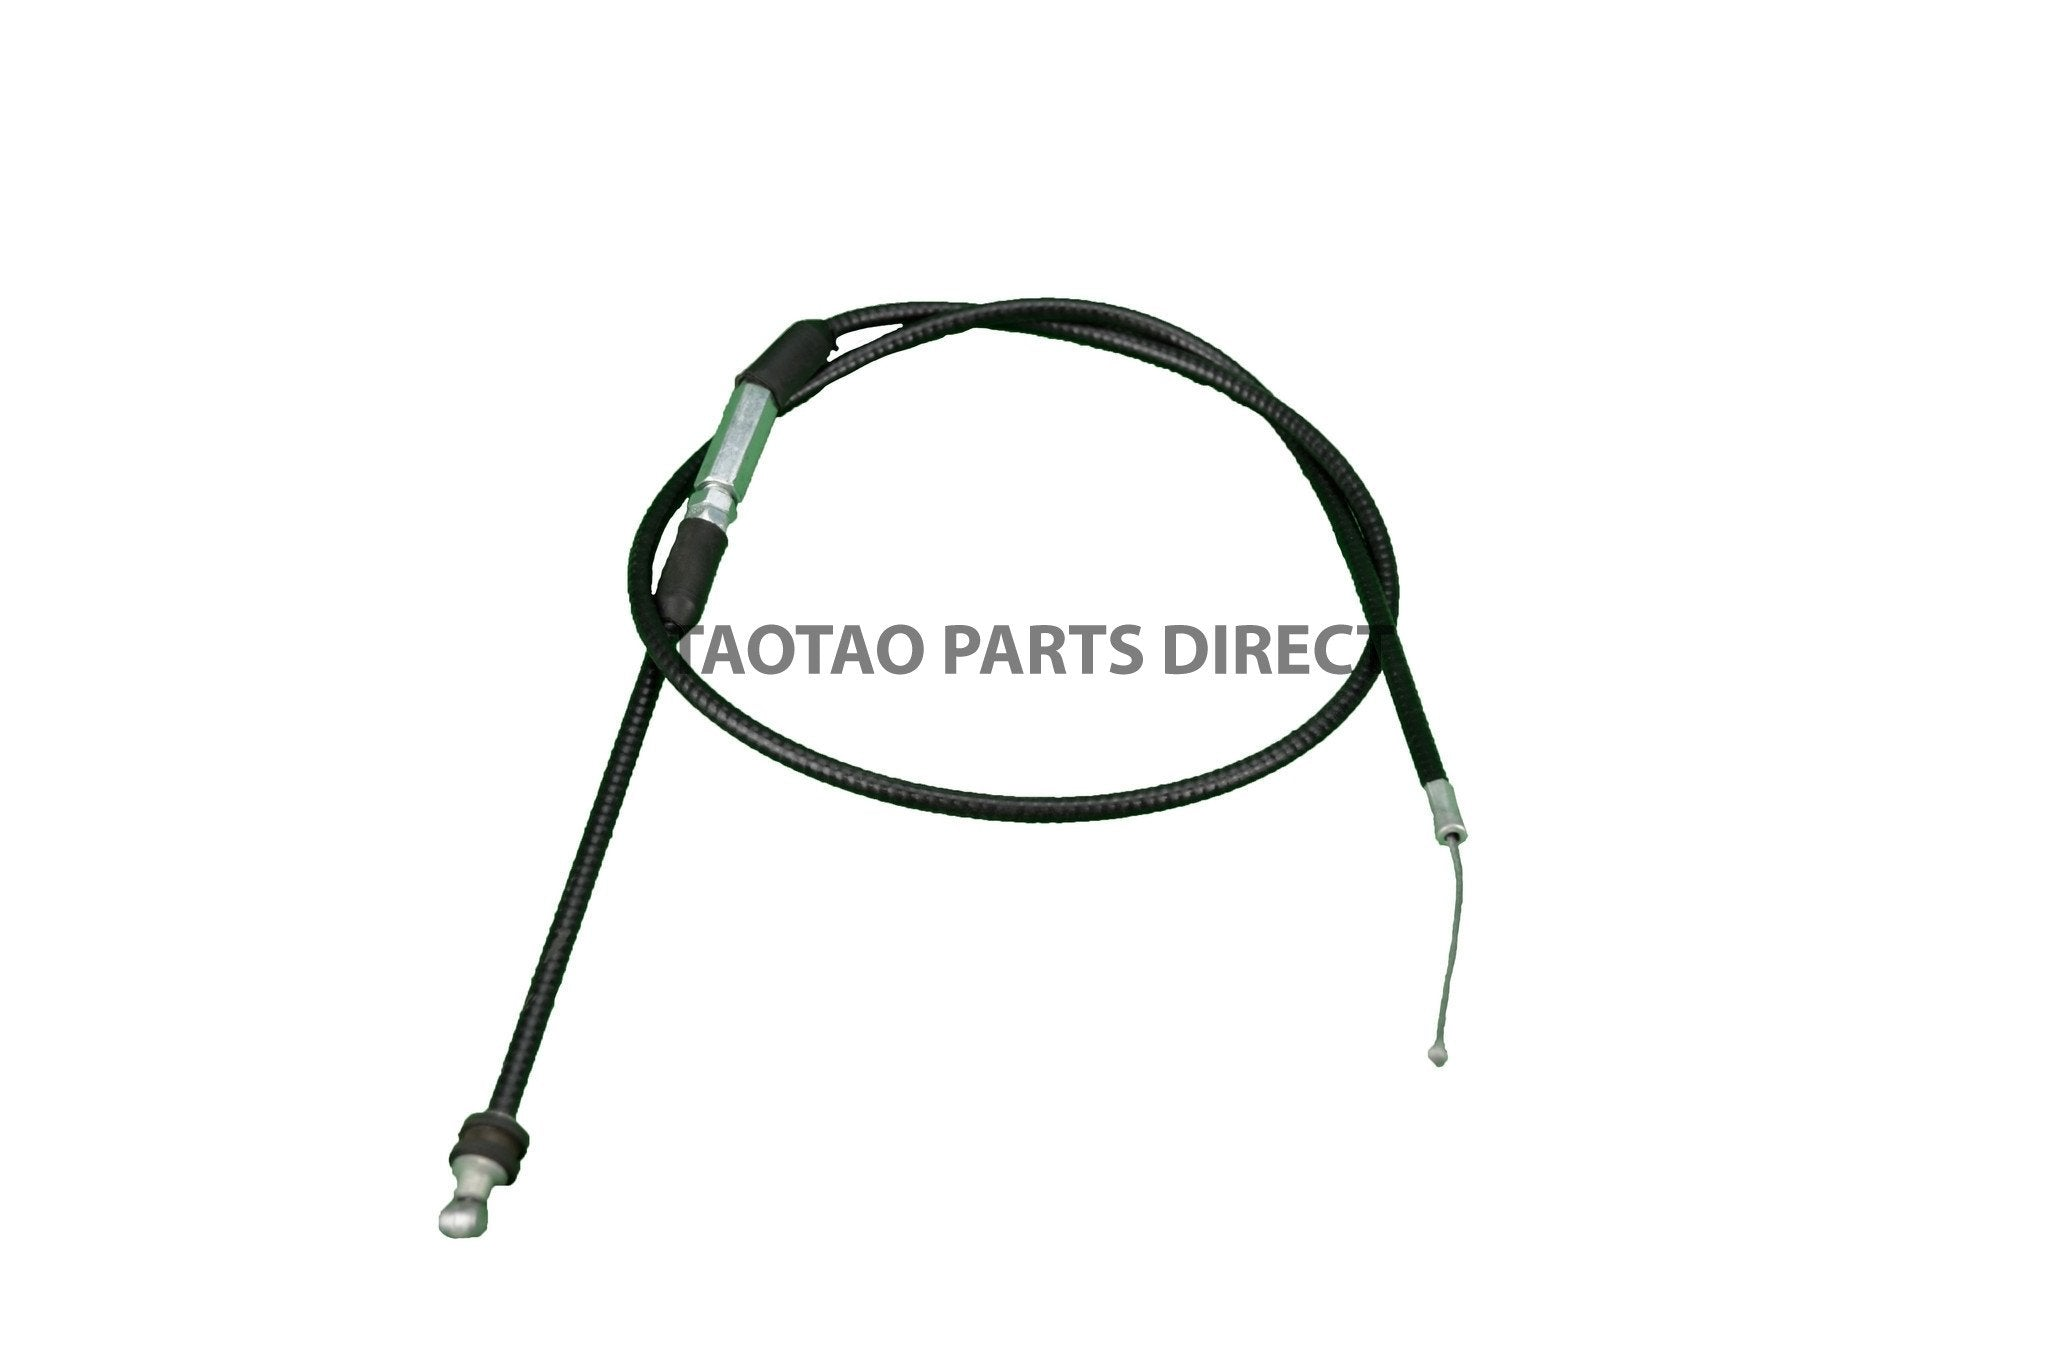 110-125cc Throttle Cable - TaoTao Parts Direct